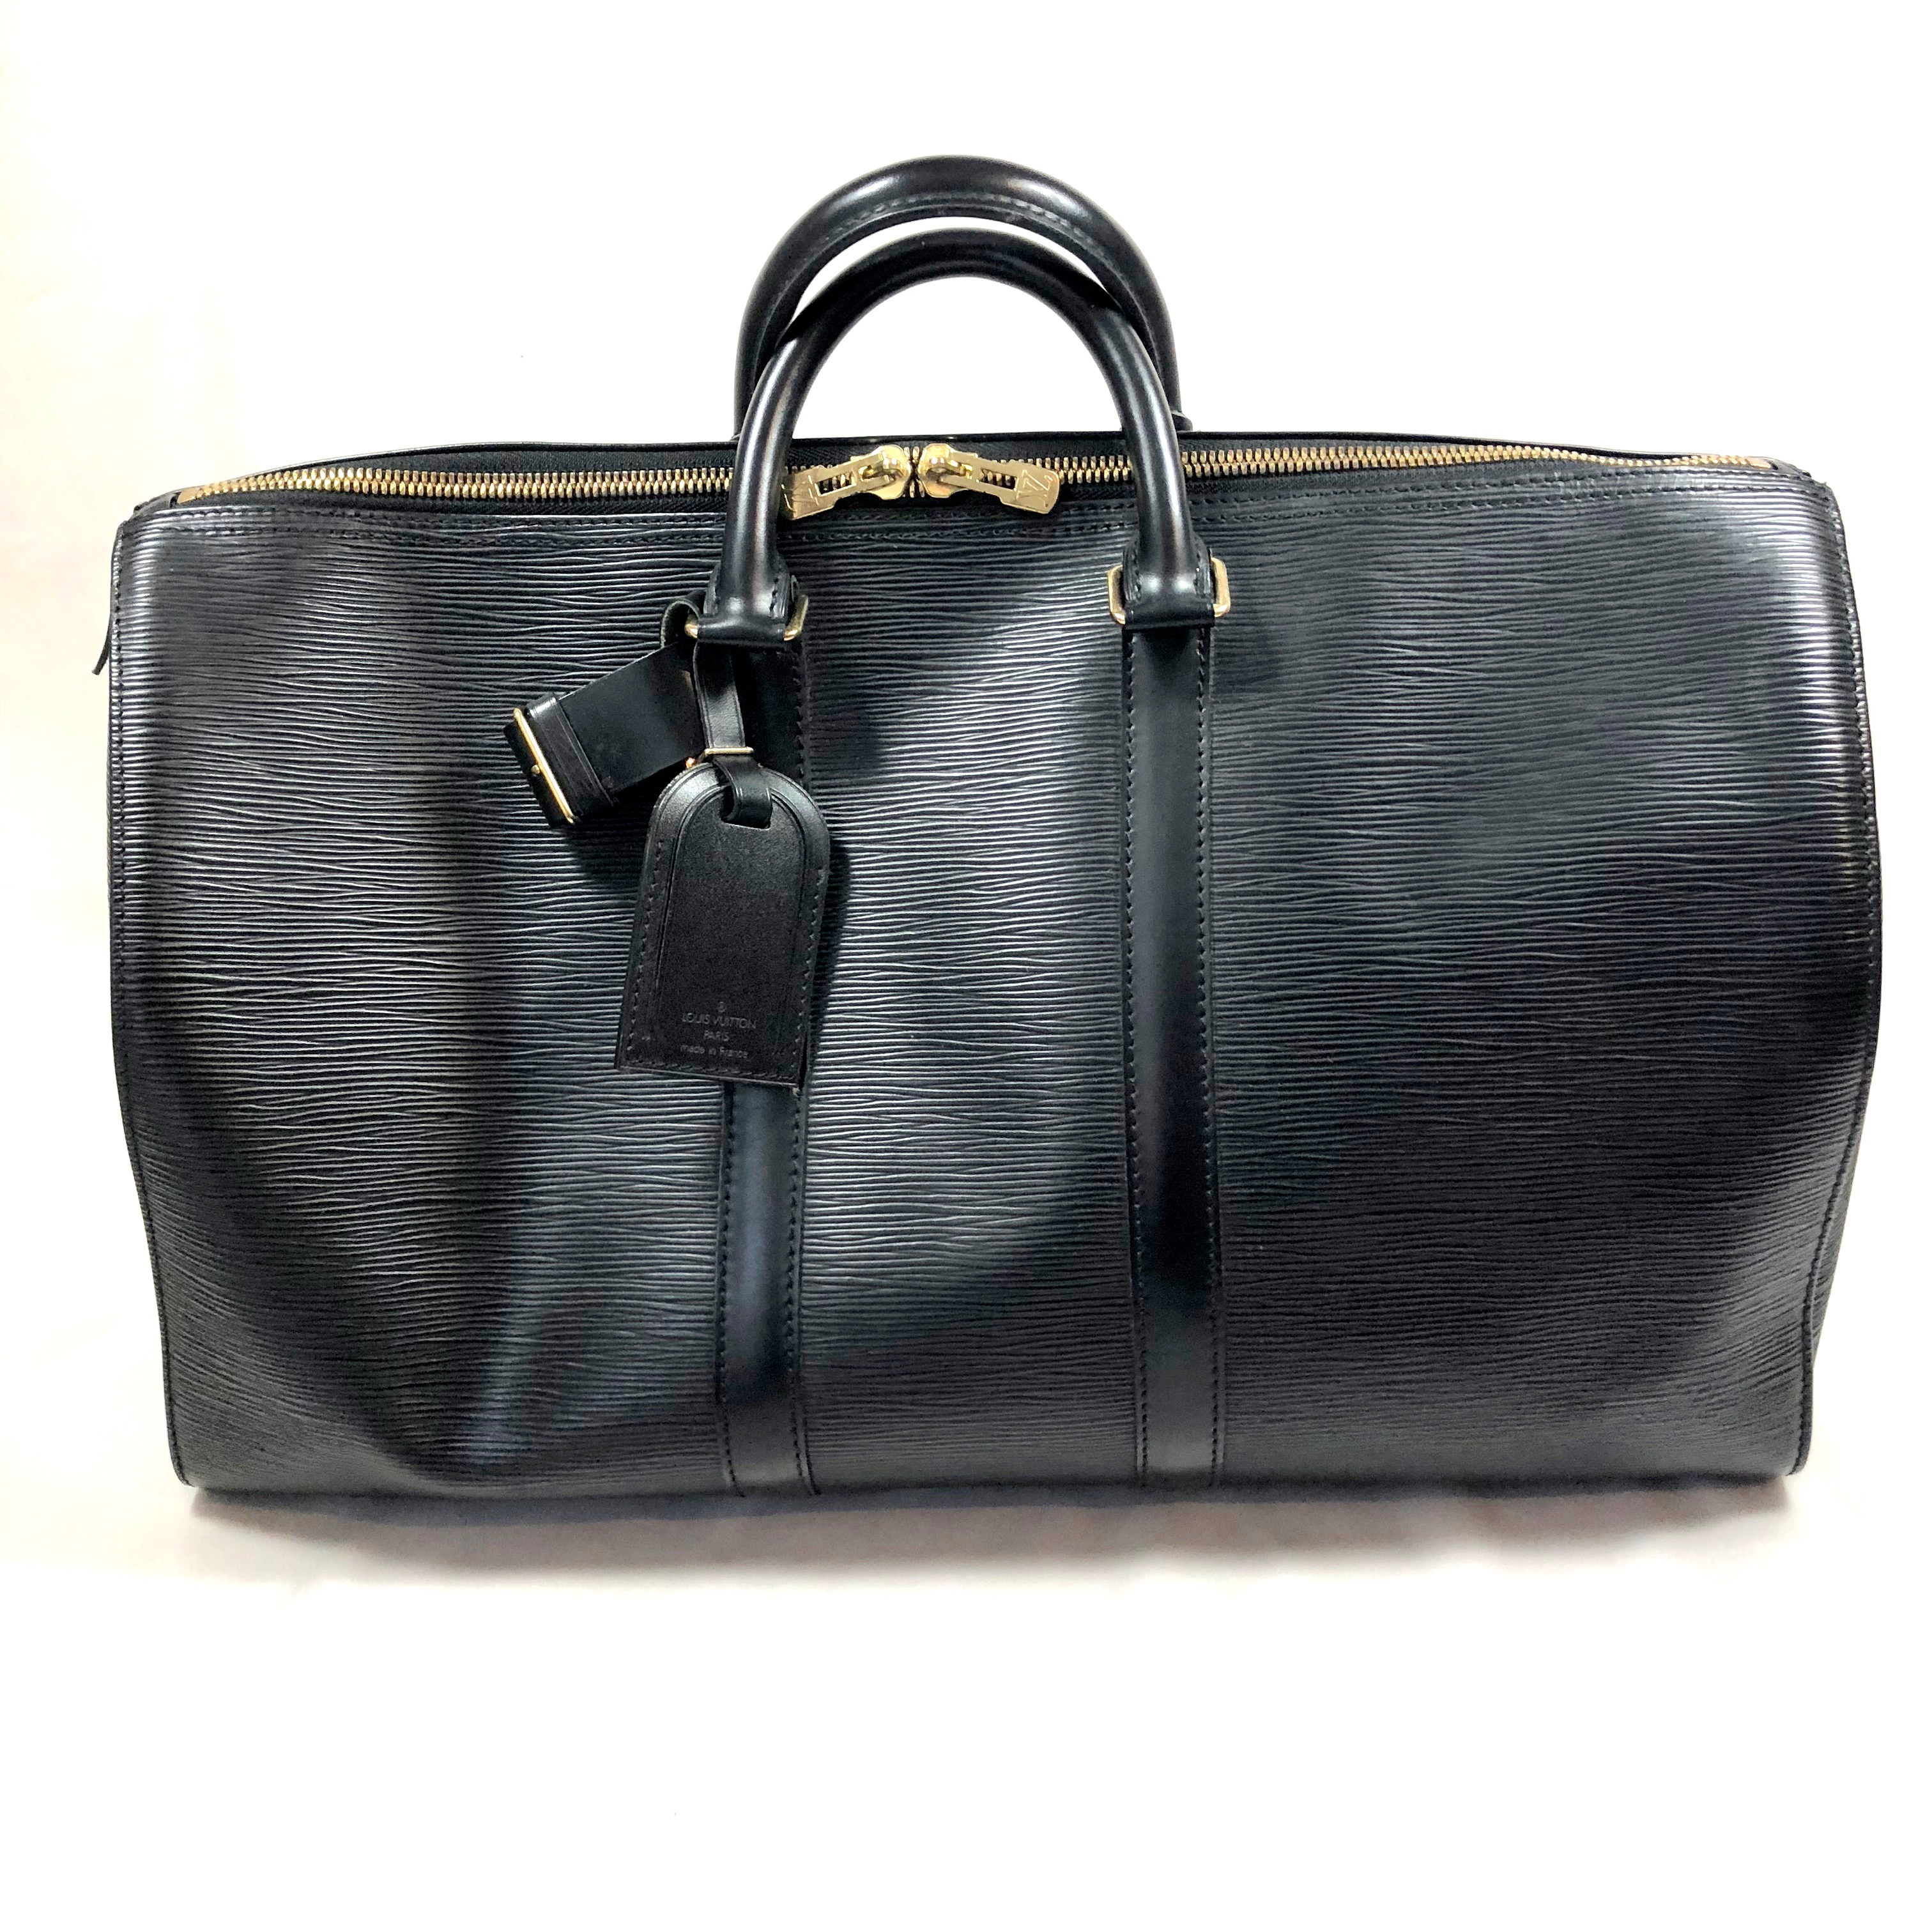 d81f4ee414d1 Louis Vuitton Keepall 45 In Epi Leather Still Fashion